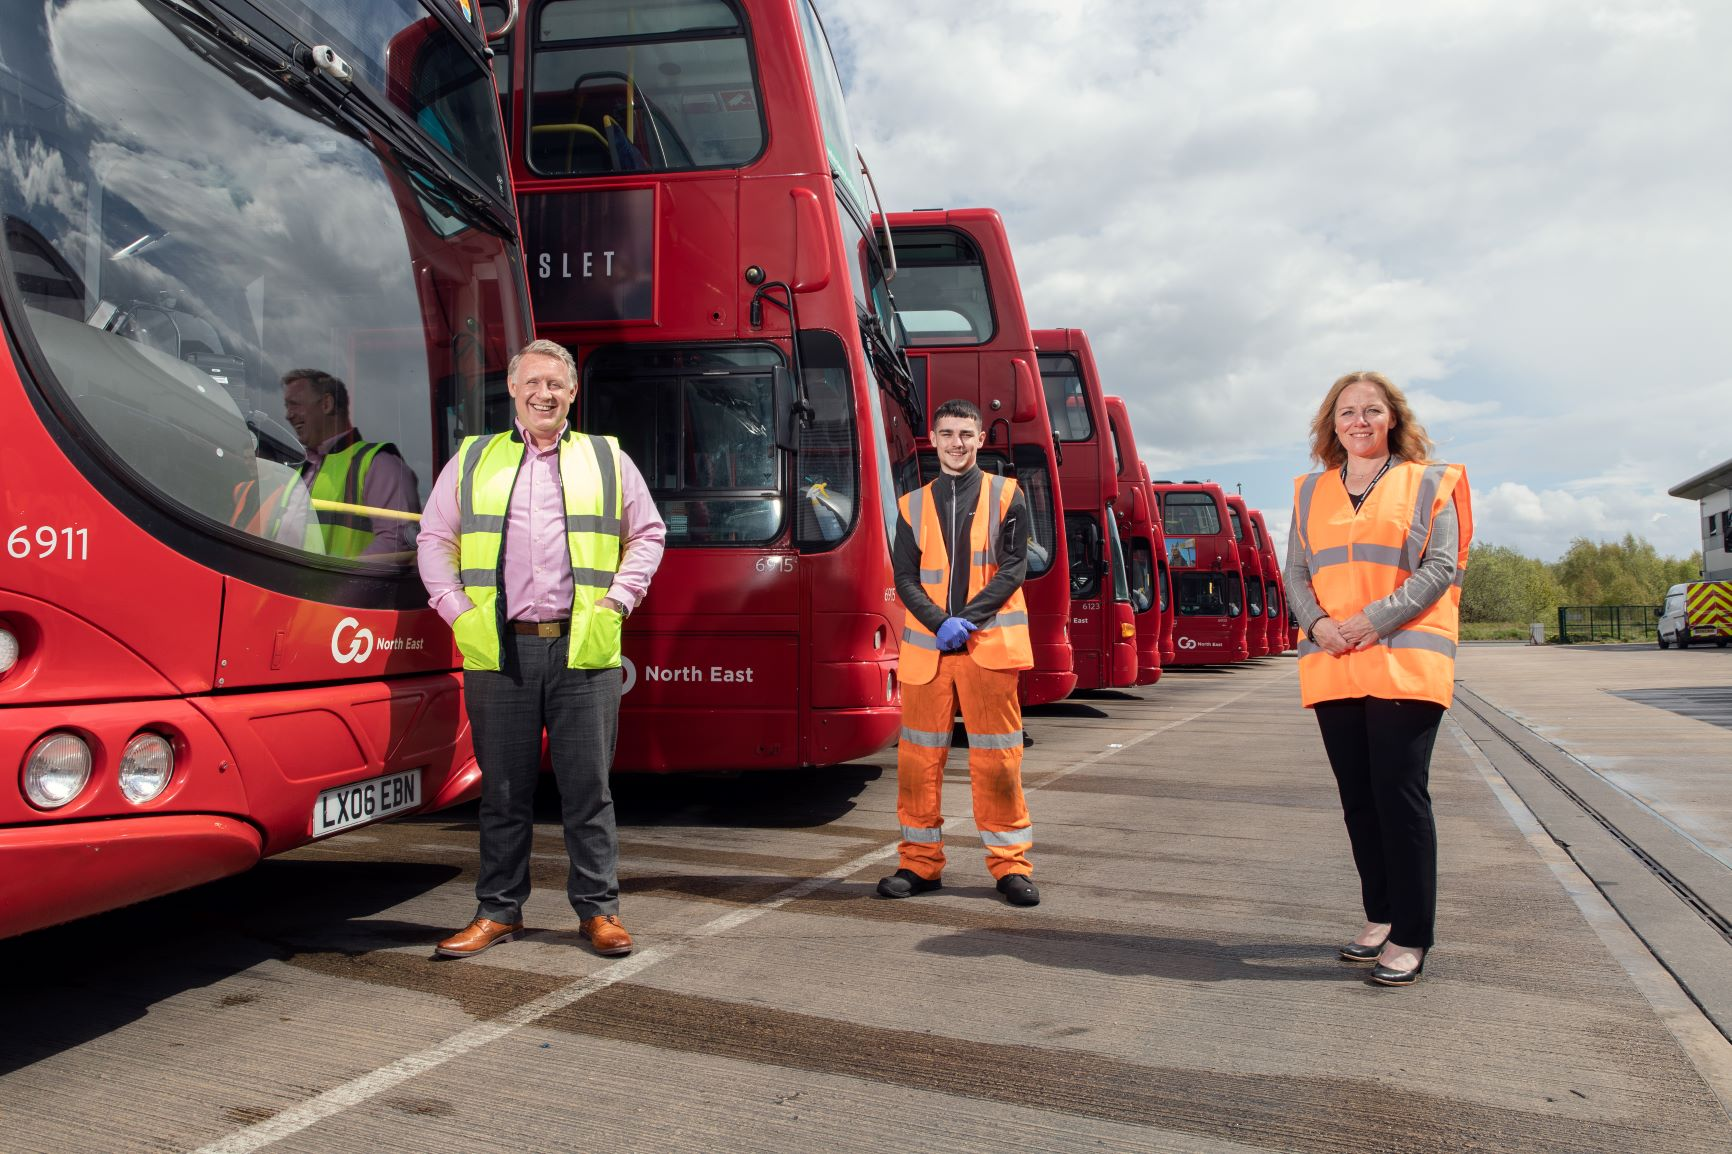 To left of image, red double-decker busses in a line. In foreground three people equally spaced out. On the left is Colin Barnes in a yellow high-vis waistcoat, in the middle is apprentice Oliver Barry in full body orange high-vis and on the right is Suzanne Slater in an orange high-vis vest